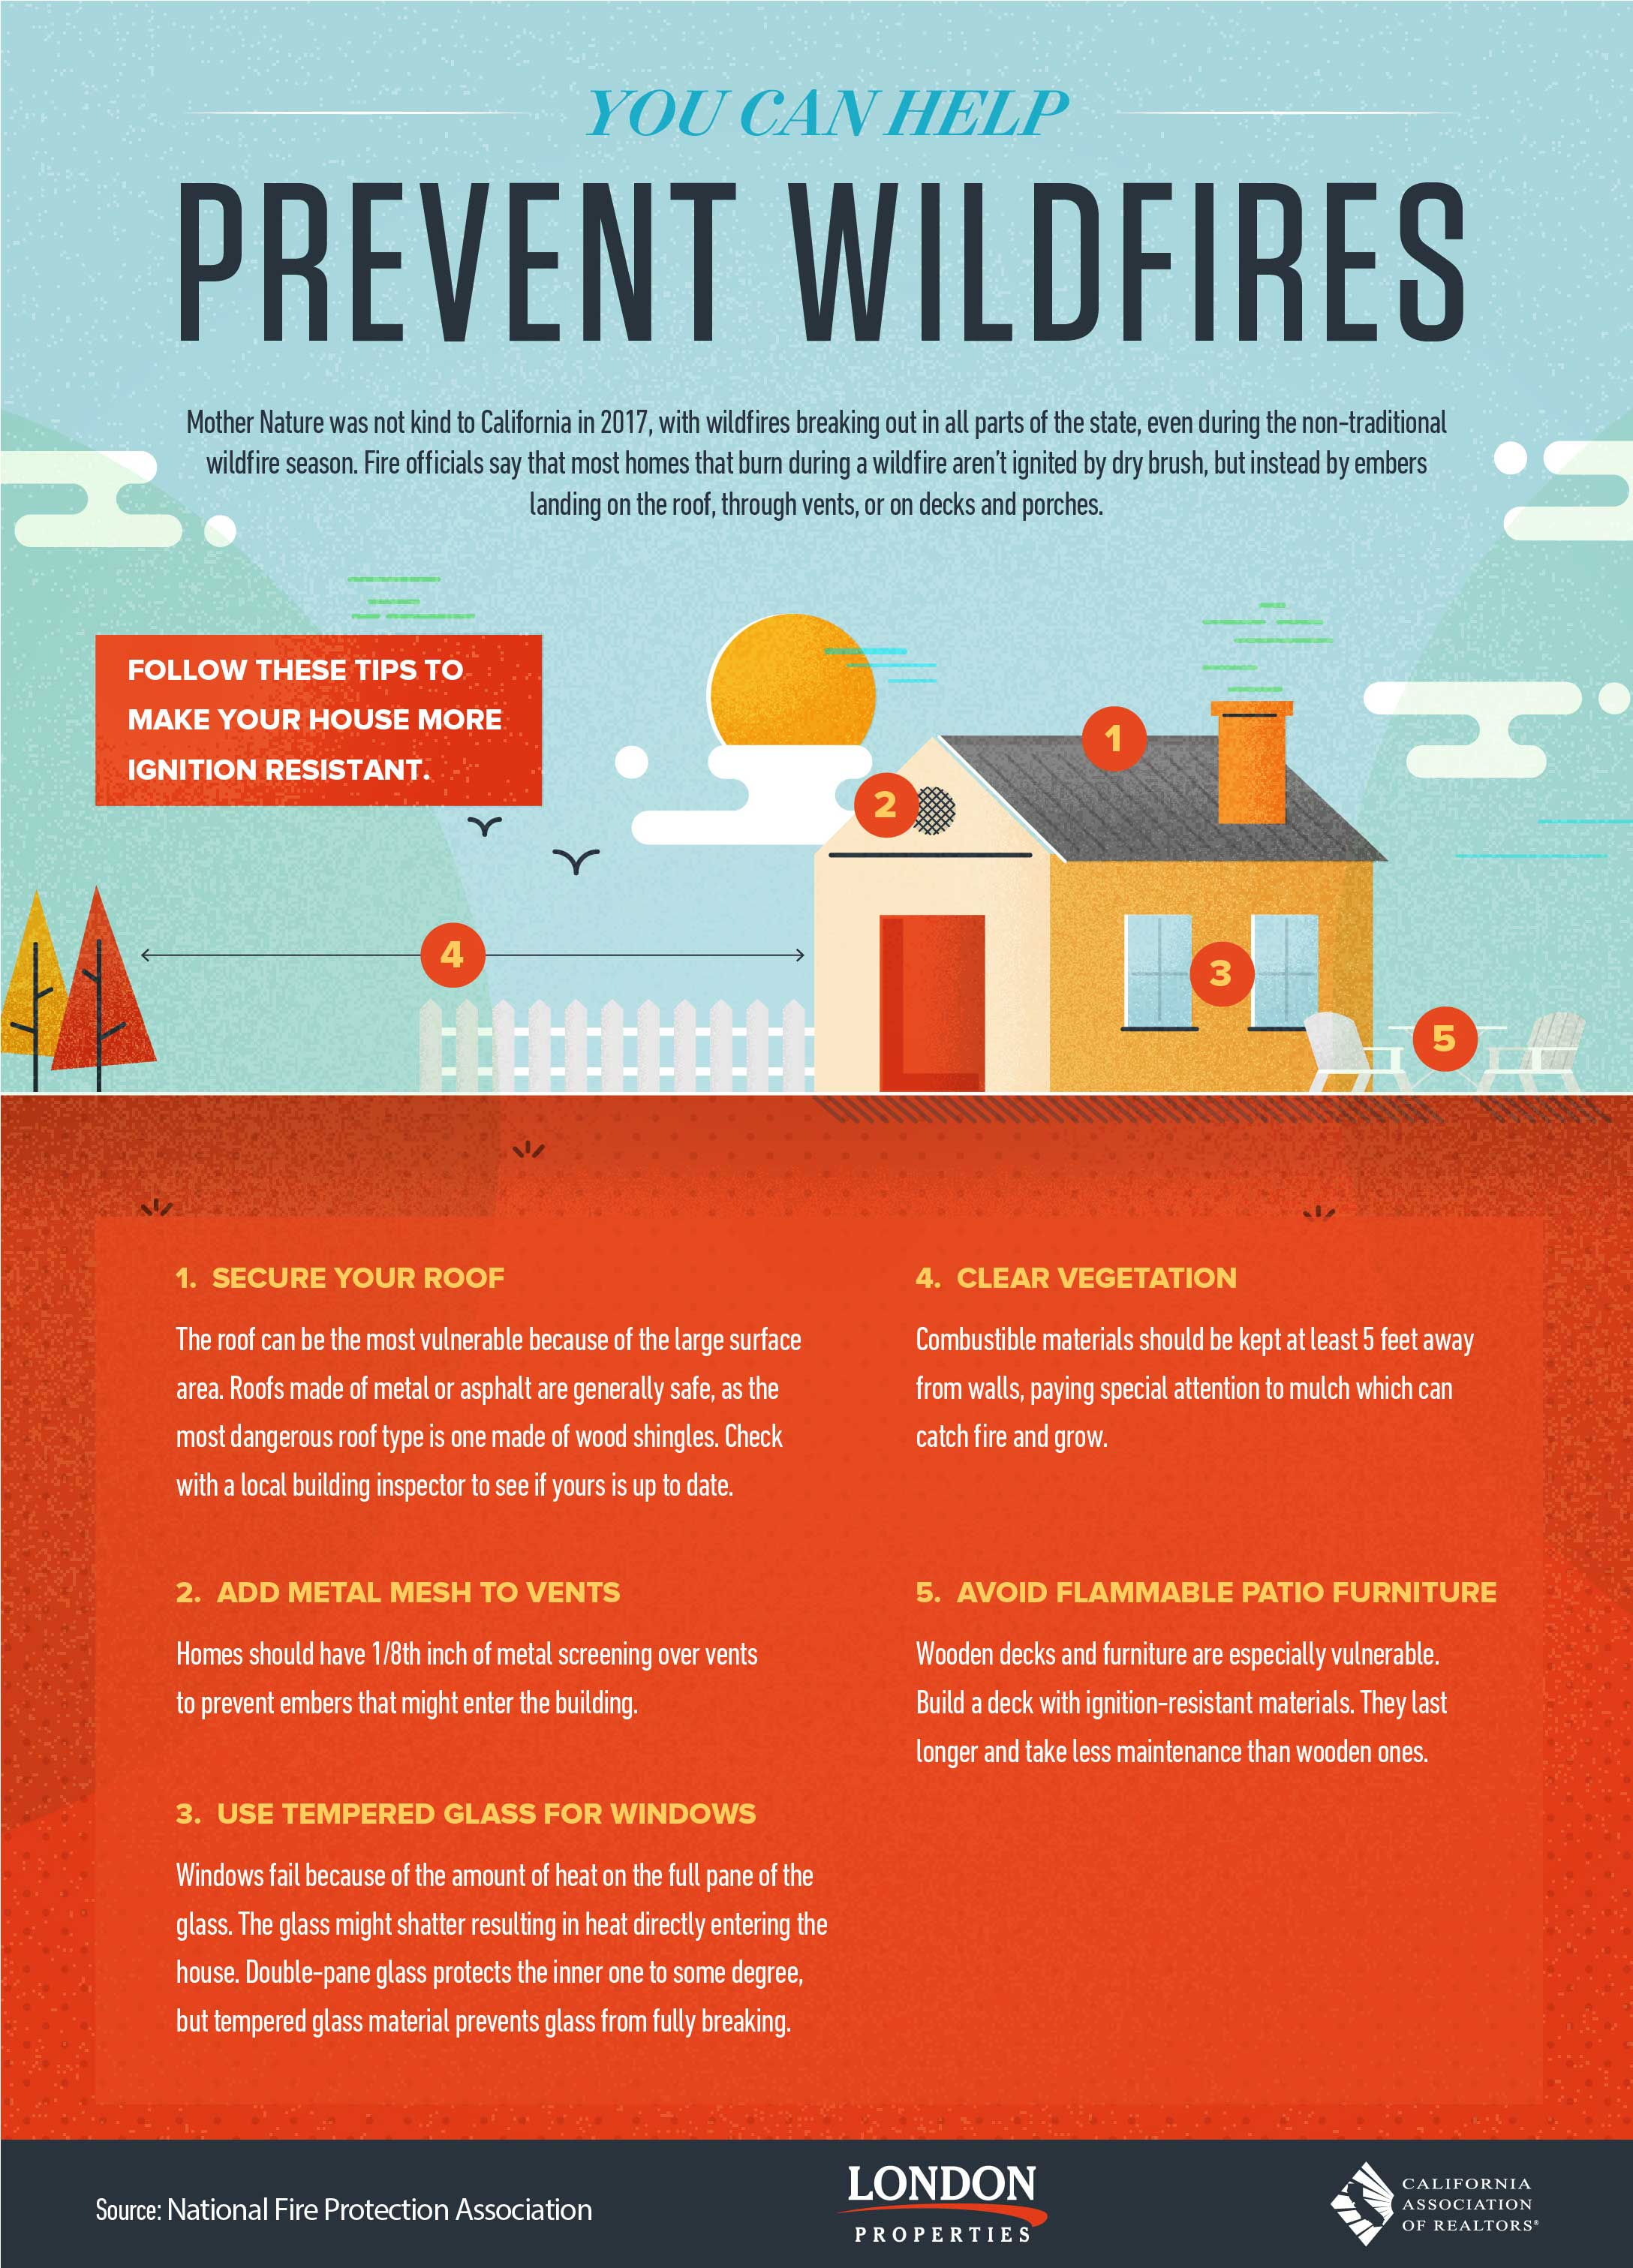 Prevent Wildfires